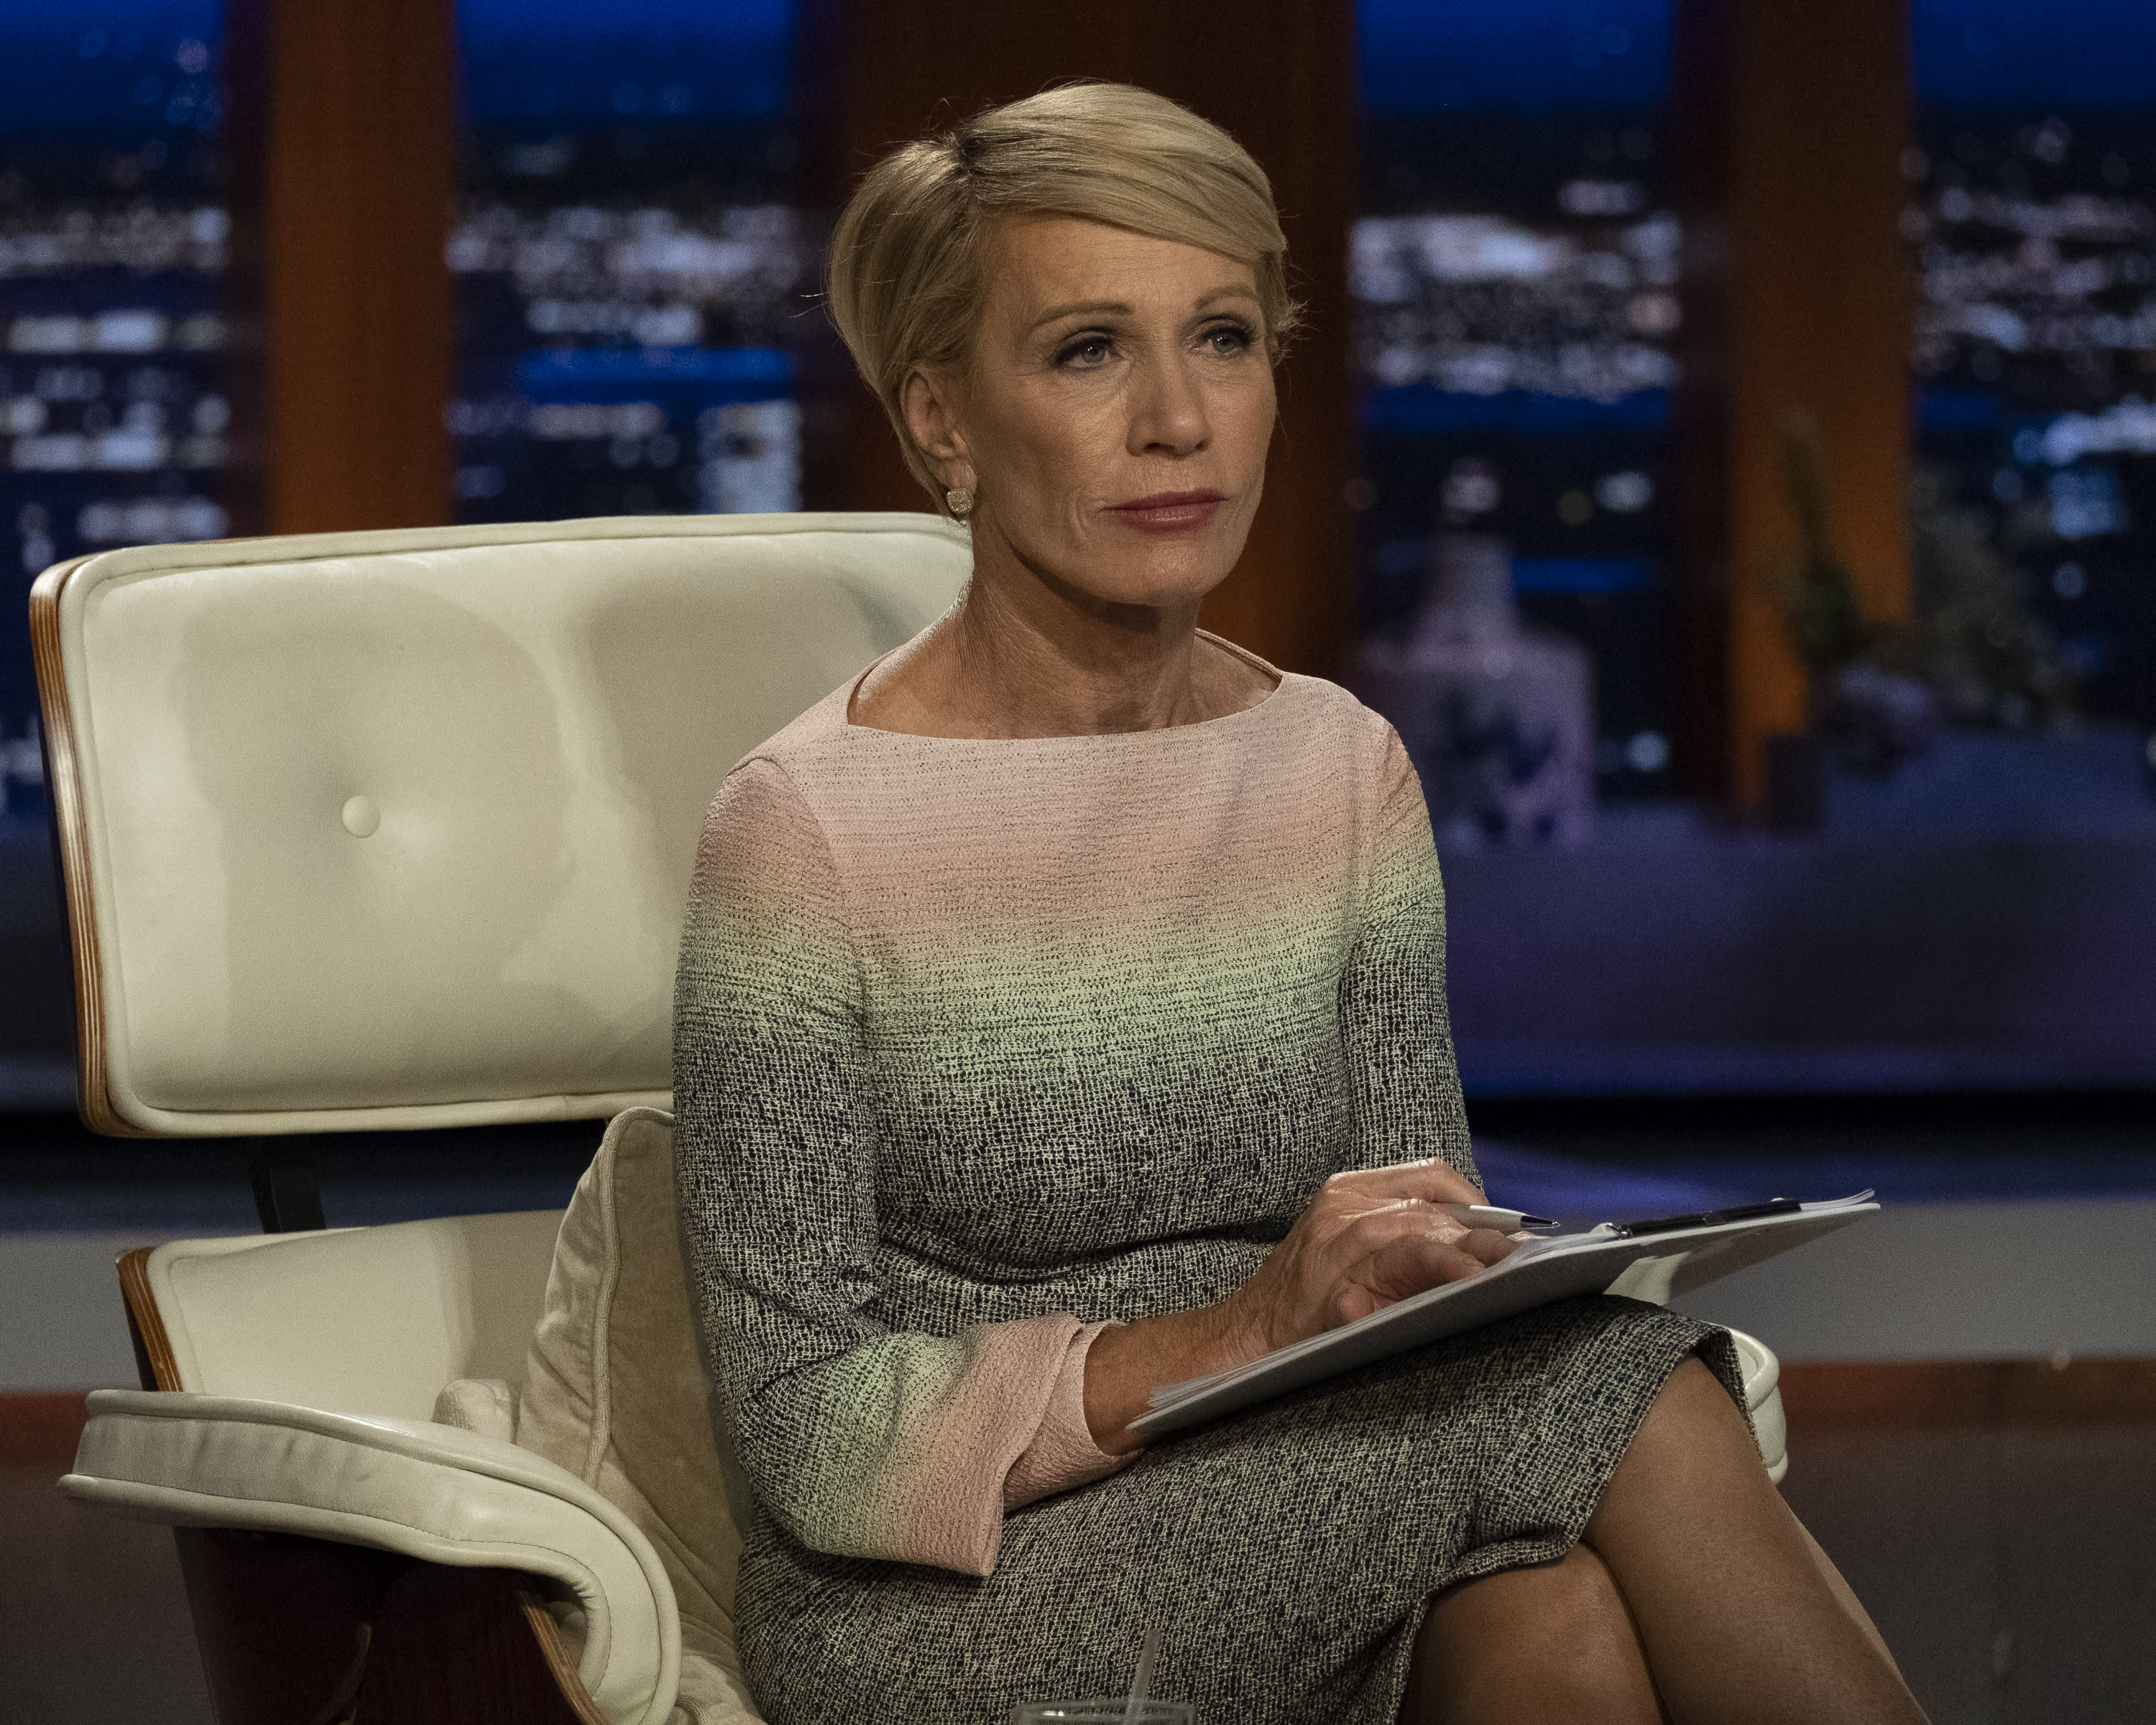 Houses for sale will be 'gobbled up': Barbara Corcoran